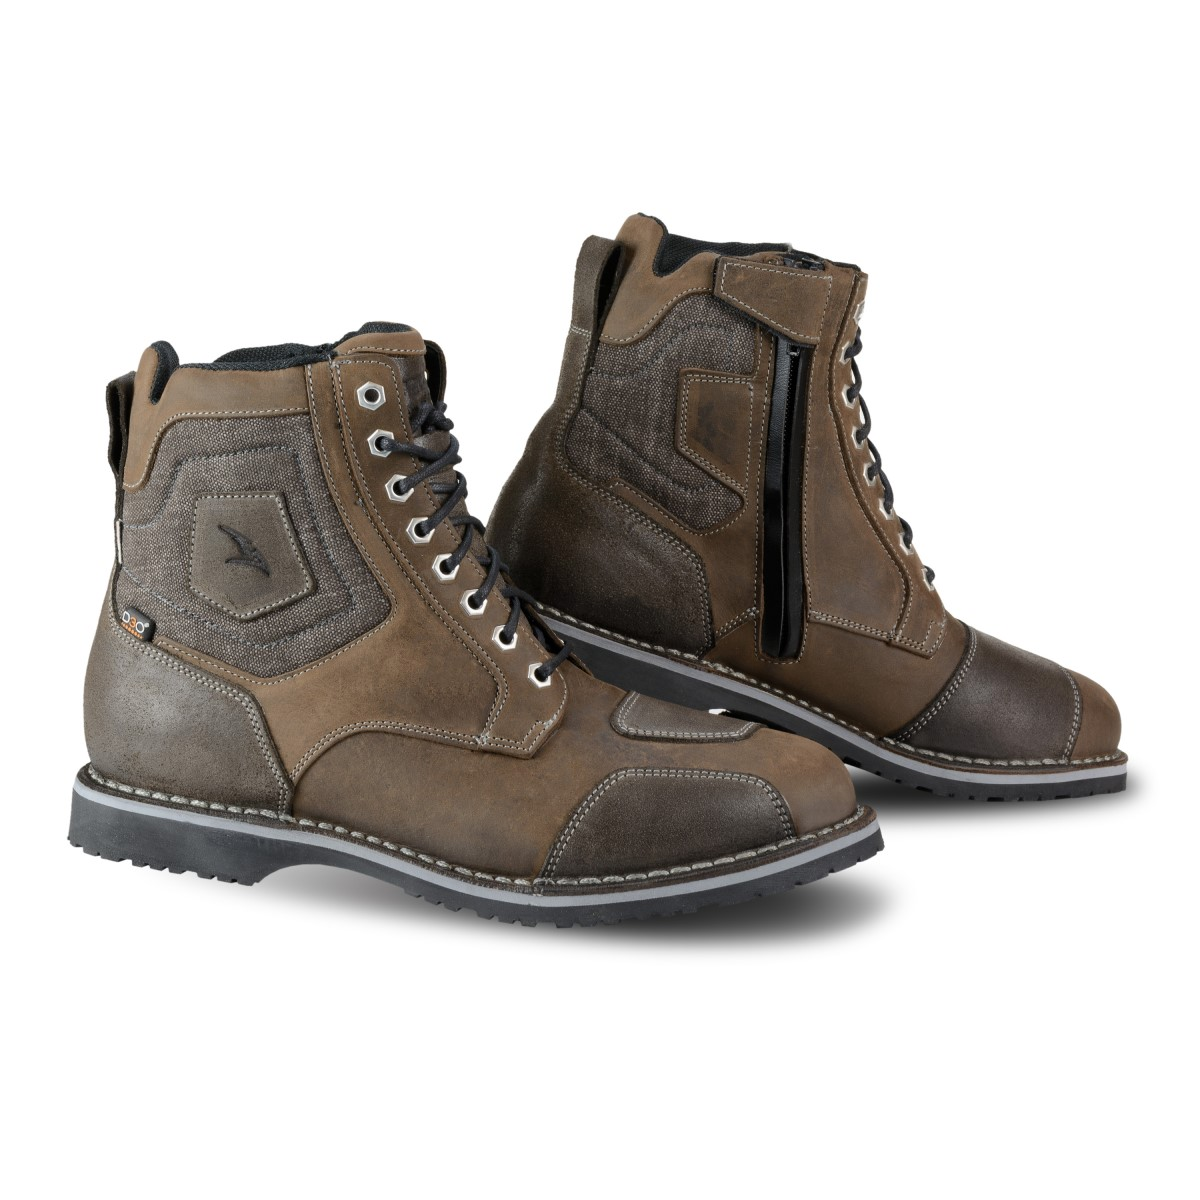 RANGER Urban Riding Boots